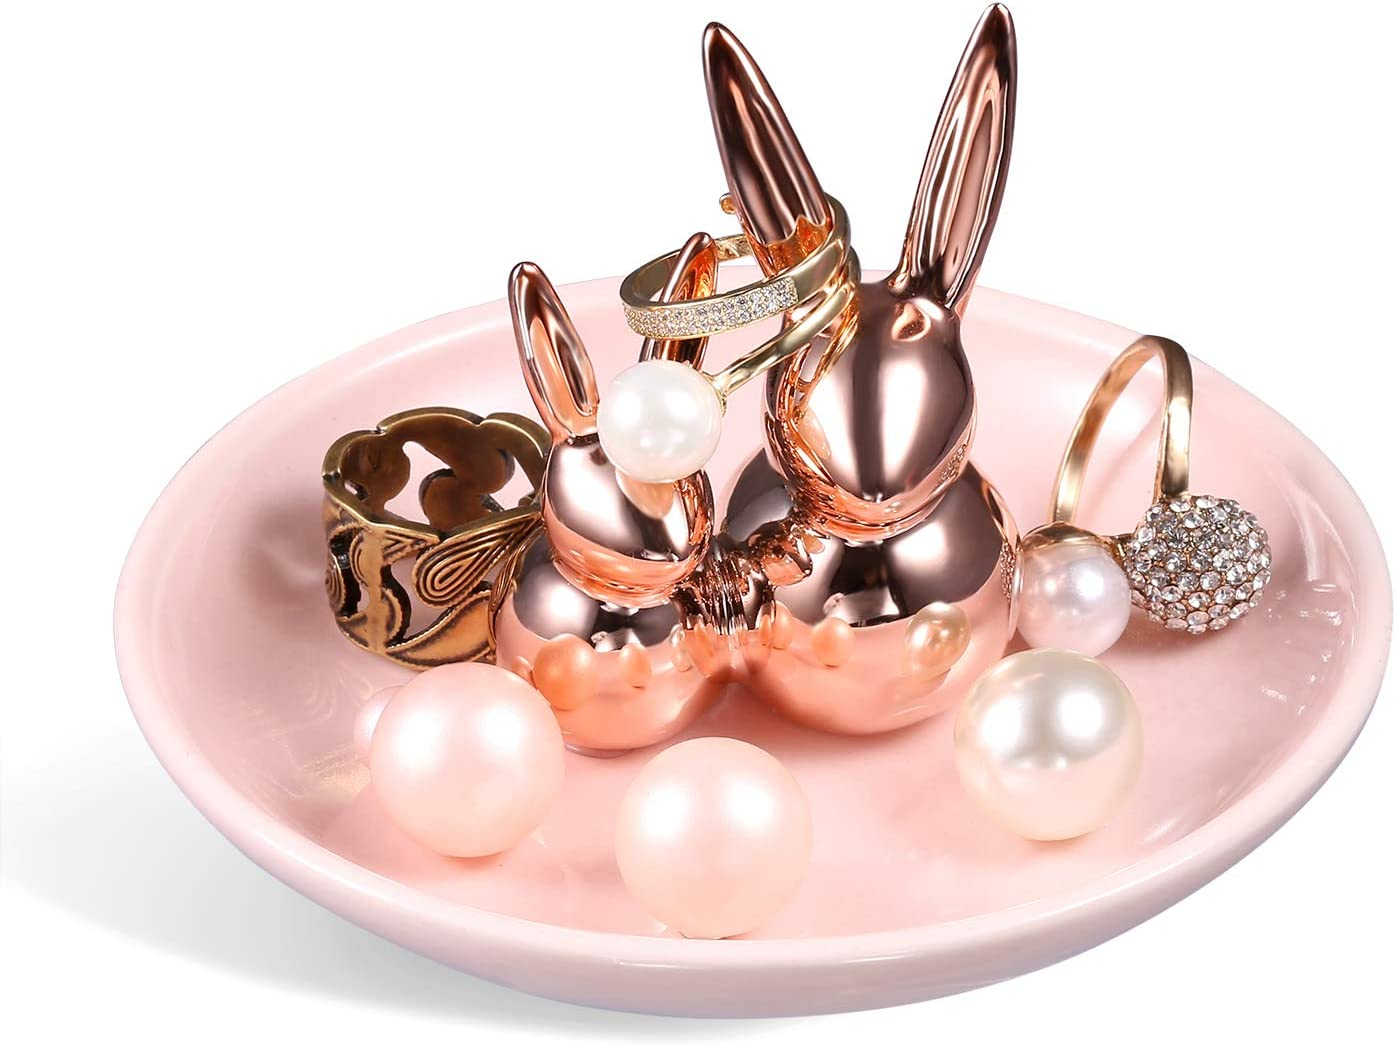 Cute Pair Rabbits Ring Holder for Mom Ceramic Dish Jewelry Tray Trinket Kitty Table Decor Stand Valentine Gift (Rose Gold)